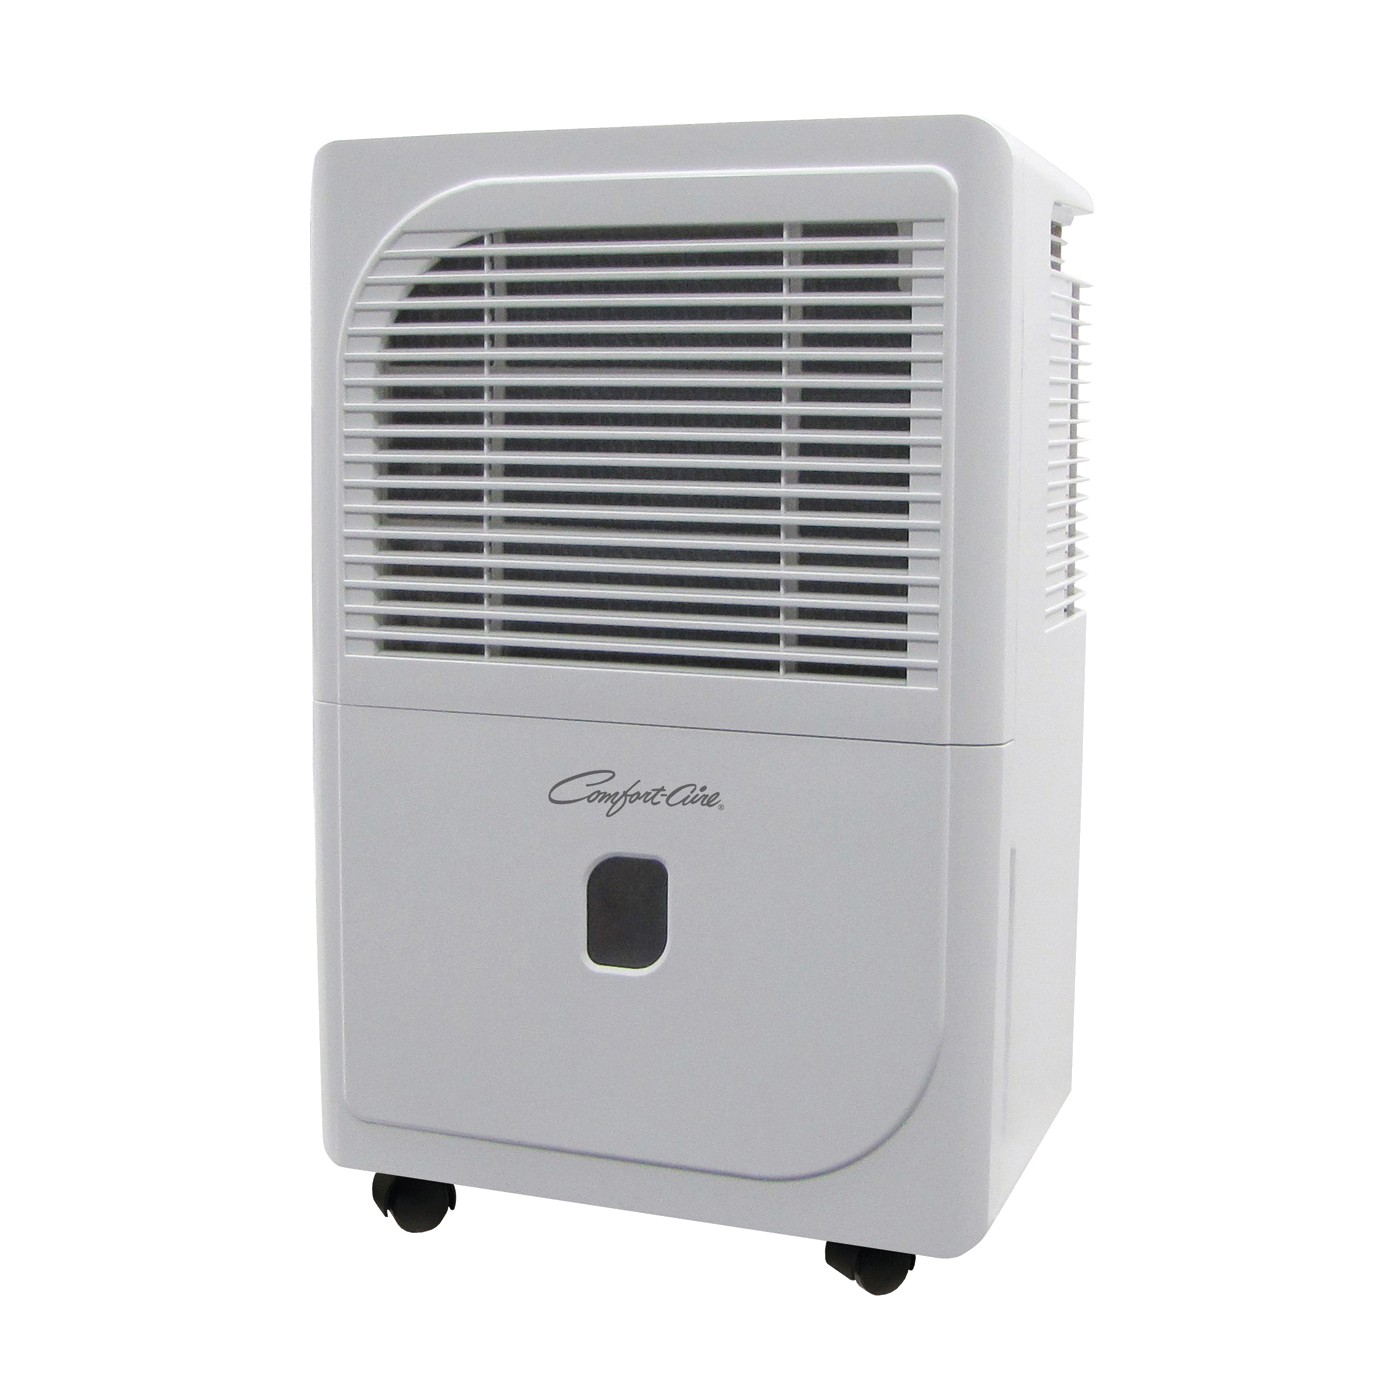 Picture of Comfort-Aire BHD-701-J Portable Dehumidifier, 6.9 A, 115 V, 720 W, 2-Speed, 70 pts/day Humidity Removal